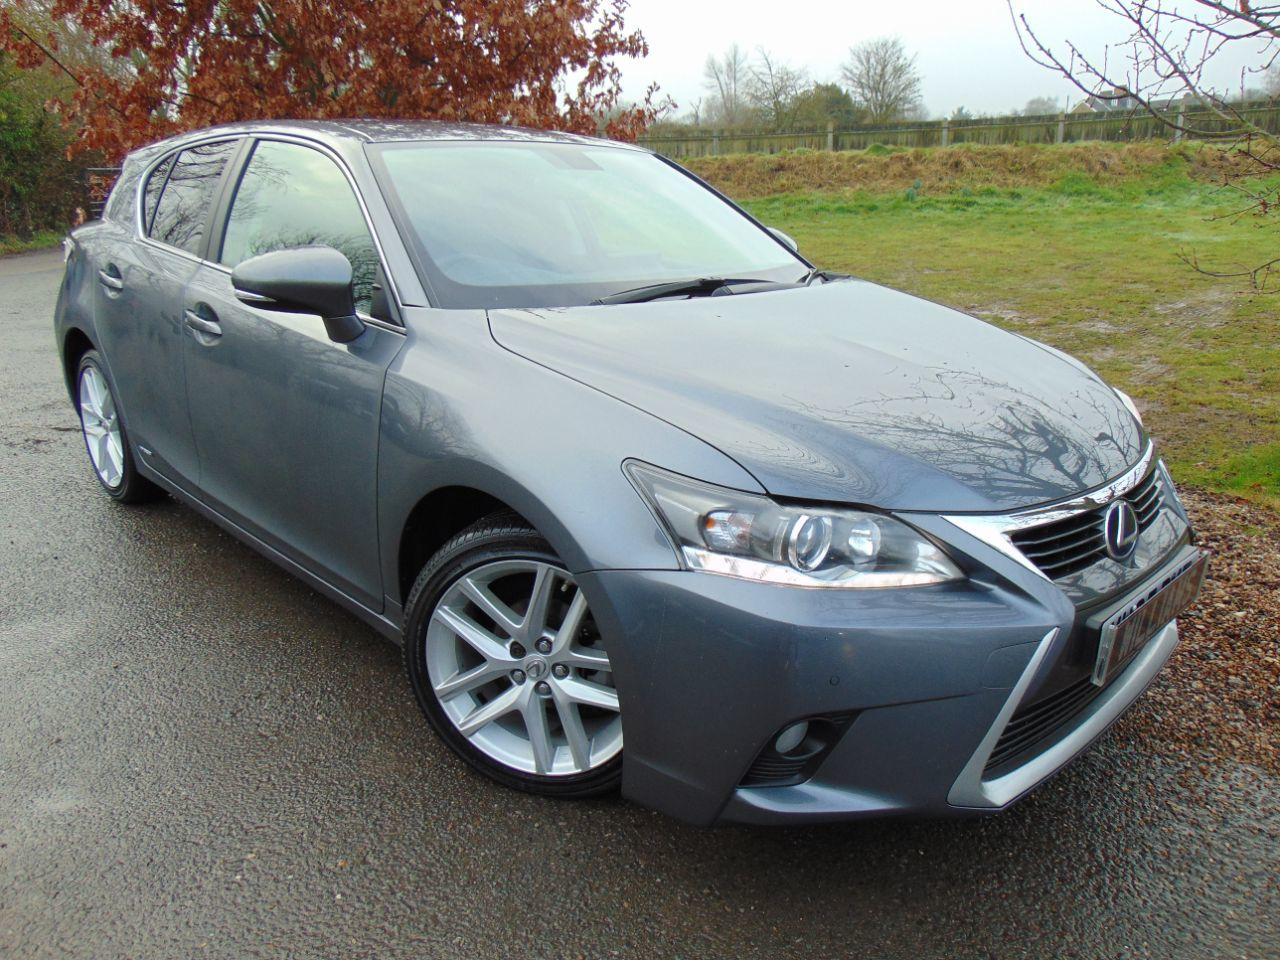 Lexus CT 200h 1.8 Advance 5dr CVT Auto (1 Owner! Full Lexus SH! ++) Hatchback Petrol / Electric Hybrid Mercury Grey Mica